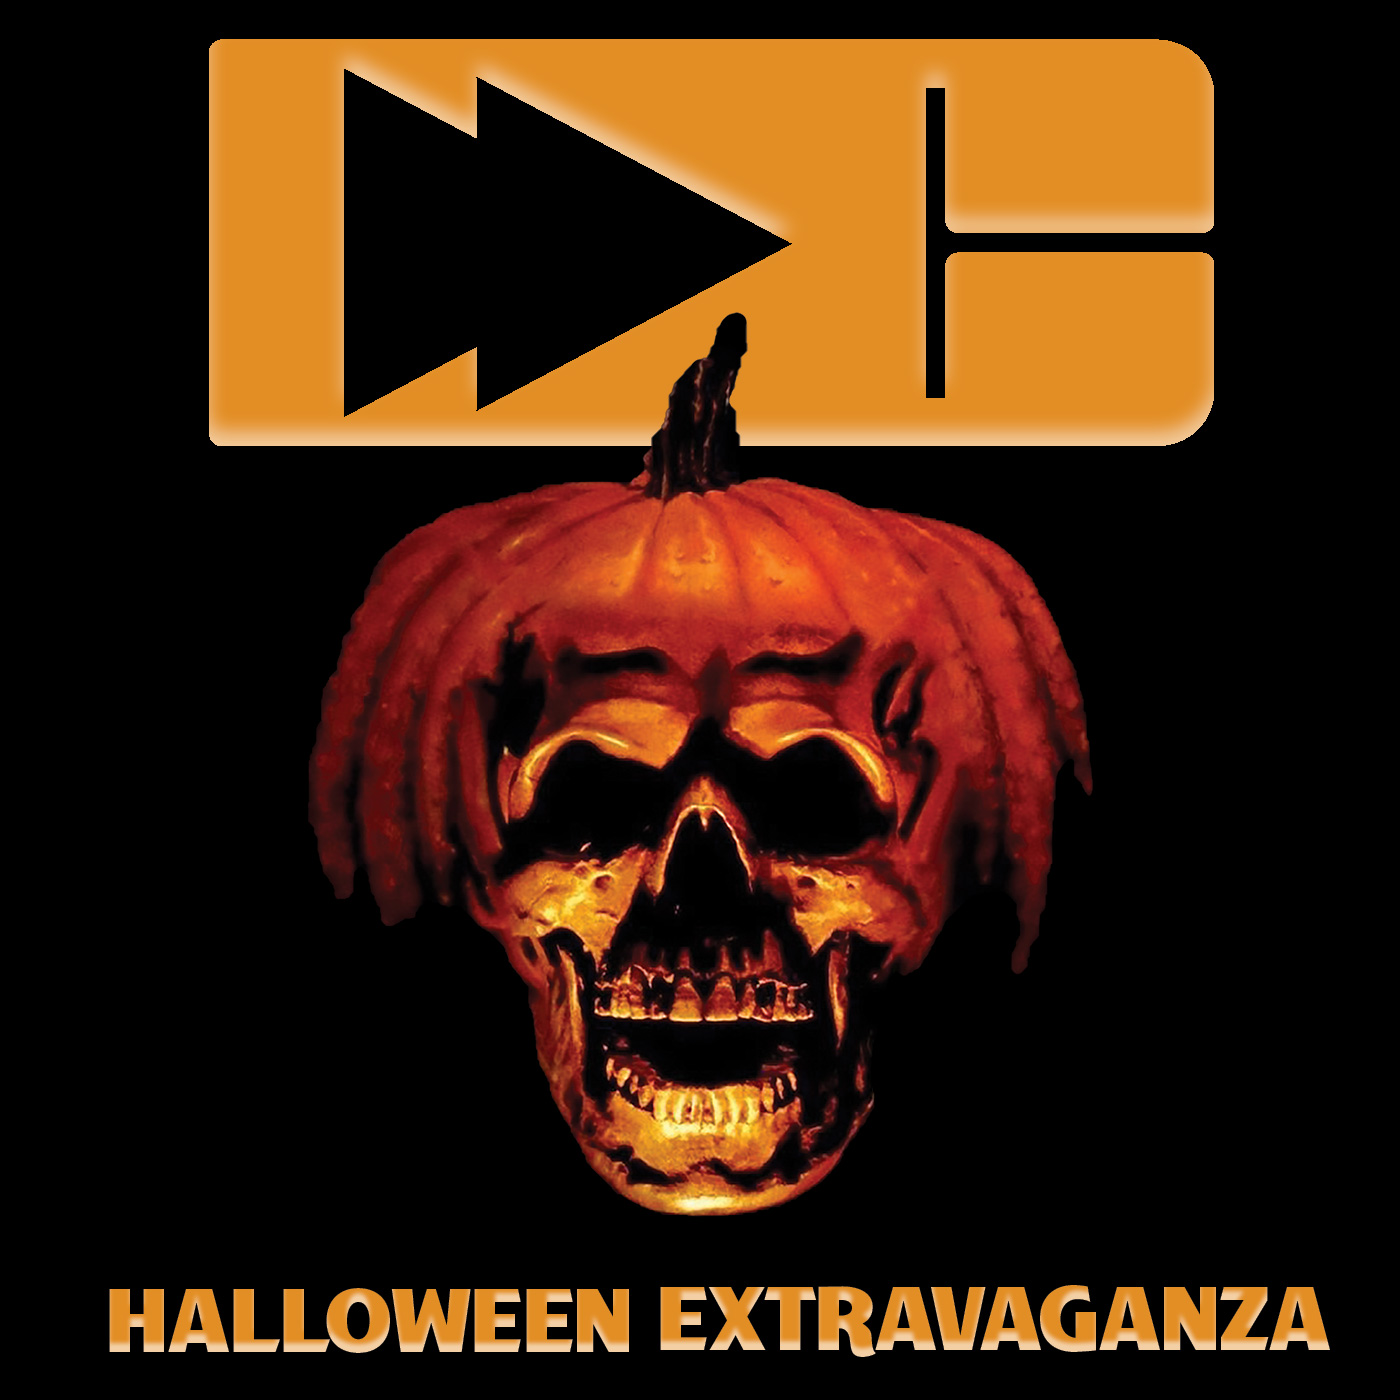 DROPPED CULTURE HALLOWEEN EXTRAVAGANZA